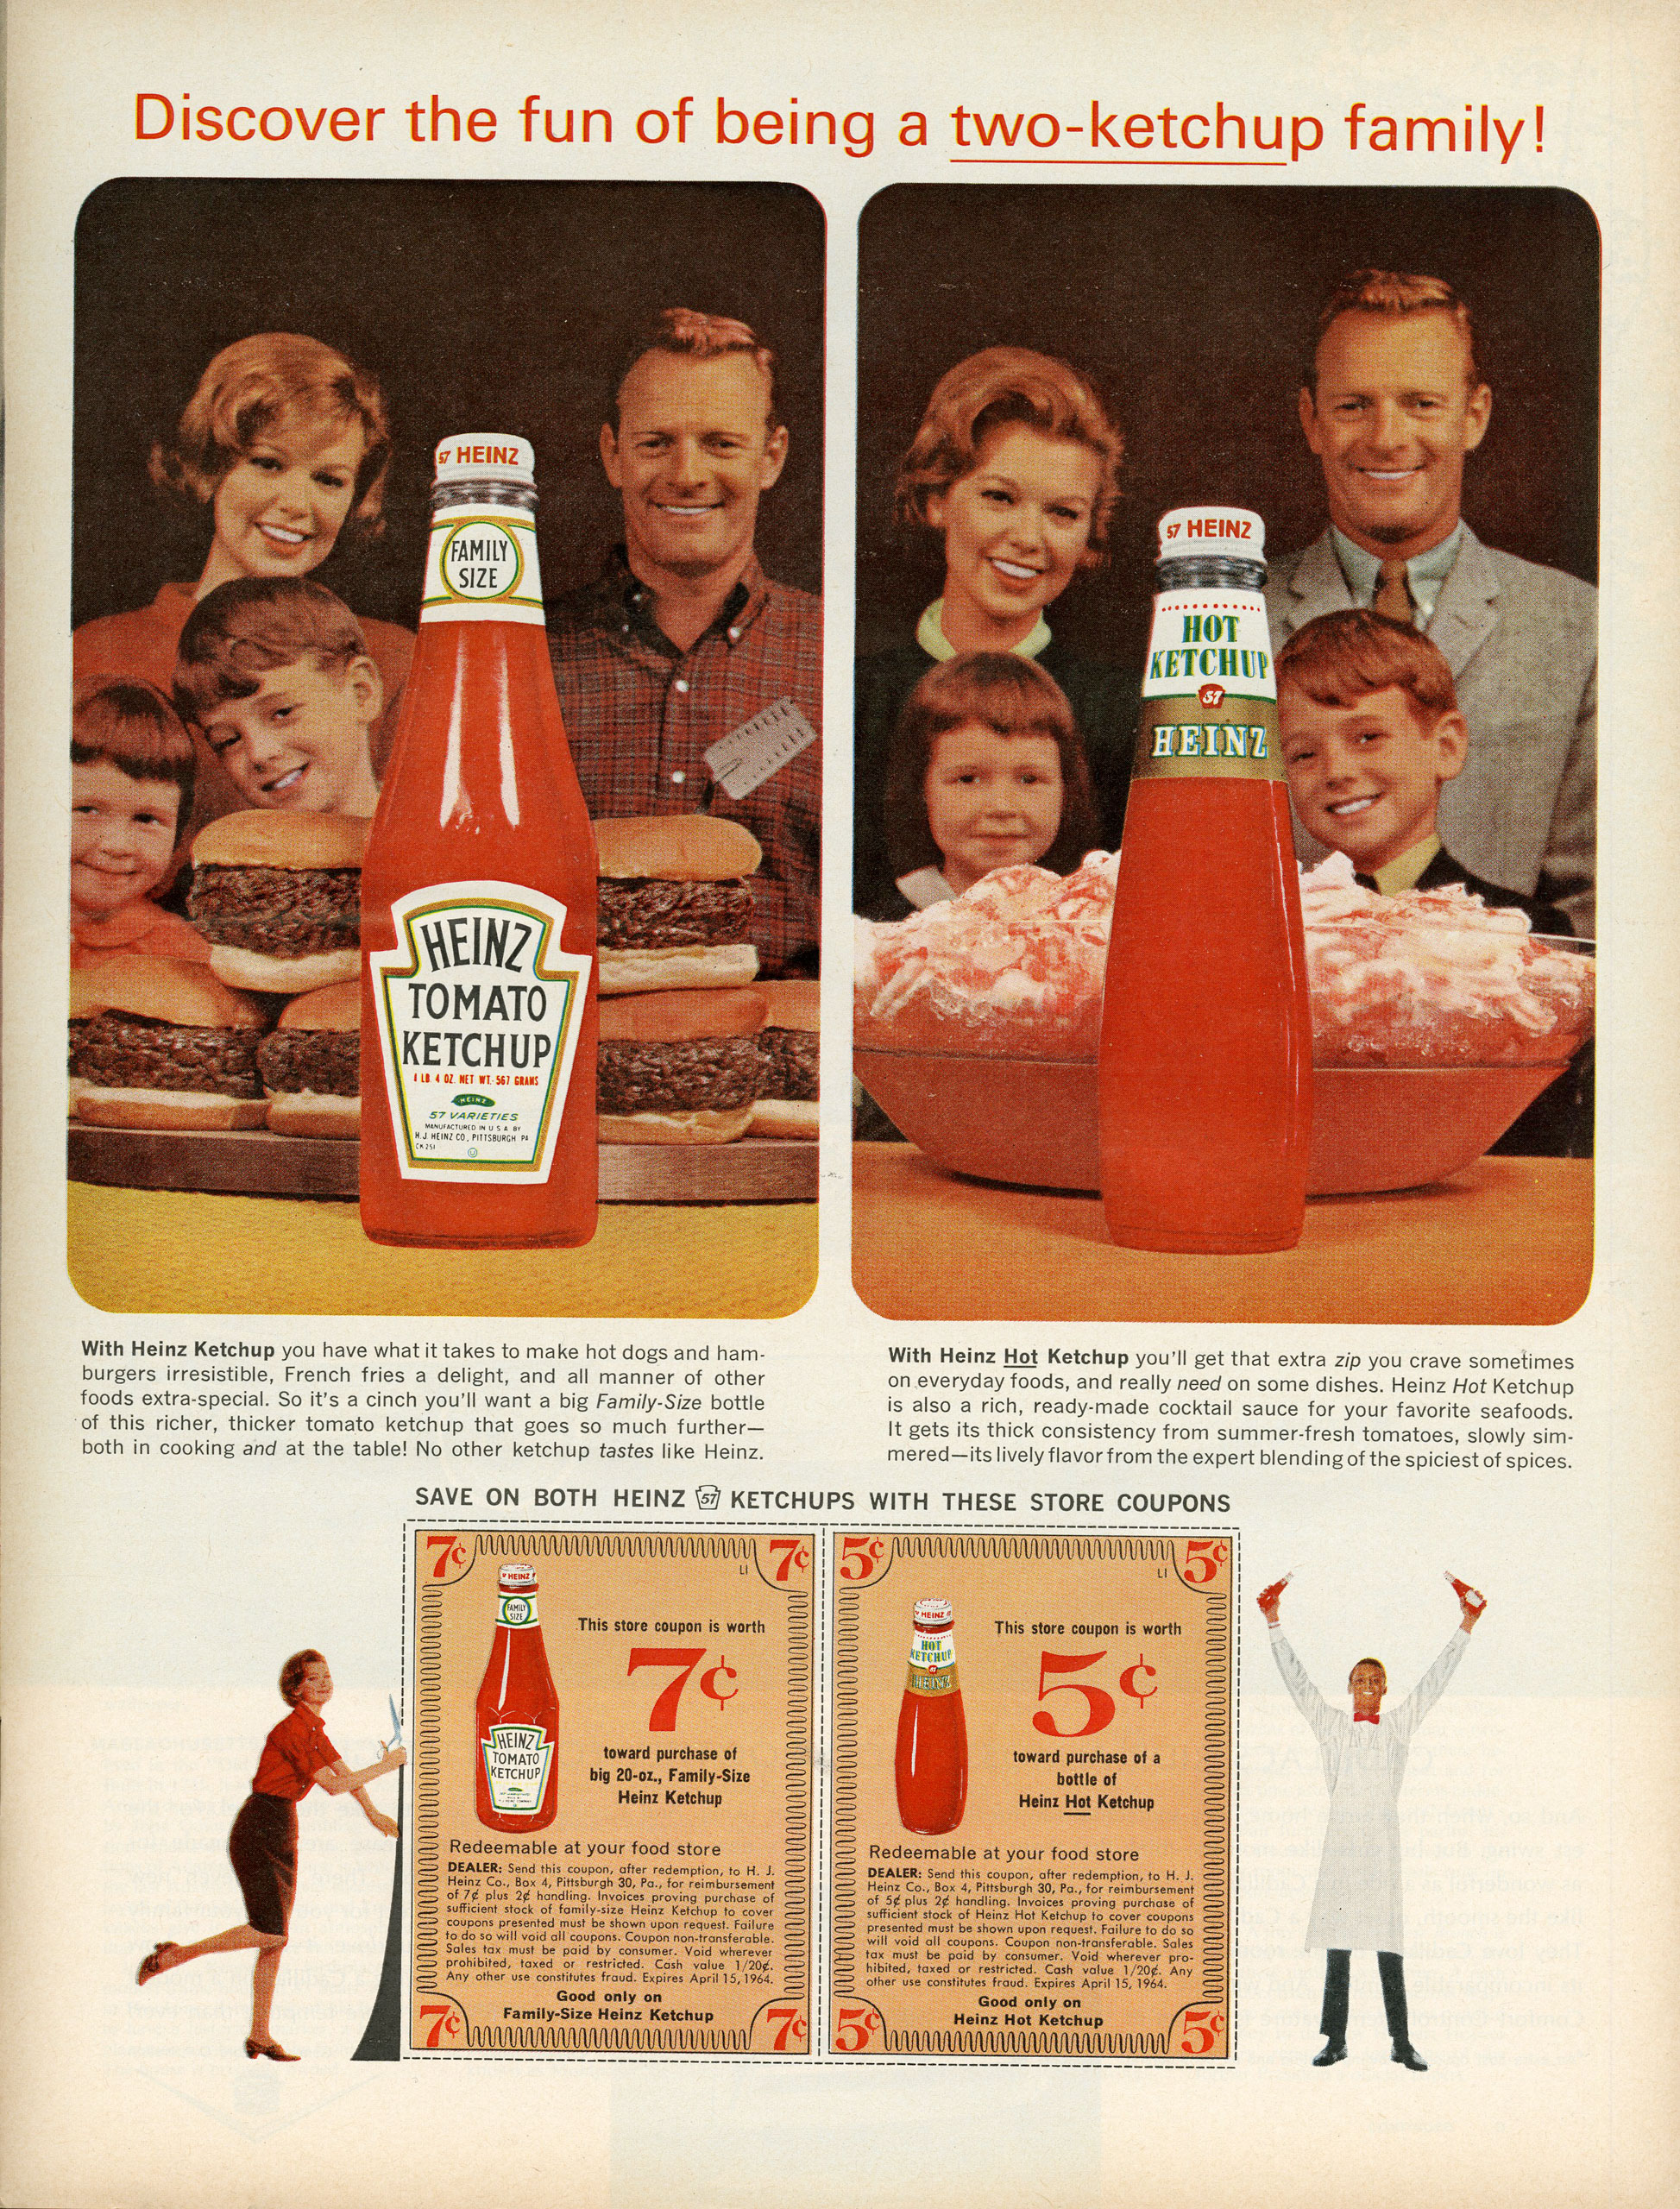 "<b>Heinz, February 14, 1964</b> Don, Peggy and the team throw around a lot of ideas for Heinz, a hard-to-please client, from ""Home is where the Heinz is"" to ""Heinz beans: some things never change"" to ""Heinz. The only ketchup."" This 1964 Heinz ad is much less sentimental, though the images it uses emphasize familial togetherness with Heinz at the center. Here, it's the notion of variety, and the excitement of a dual-identity brought about by multiple ketchup flavors, that's used to entice customers."